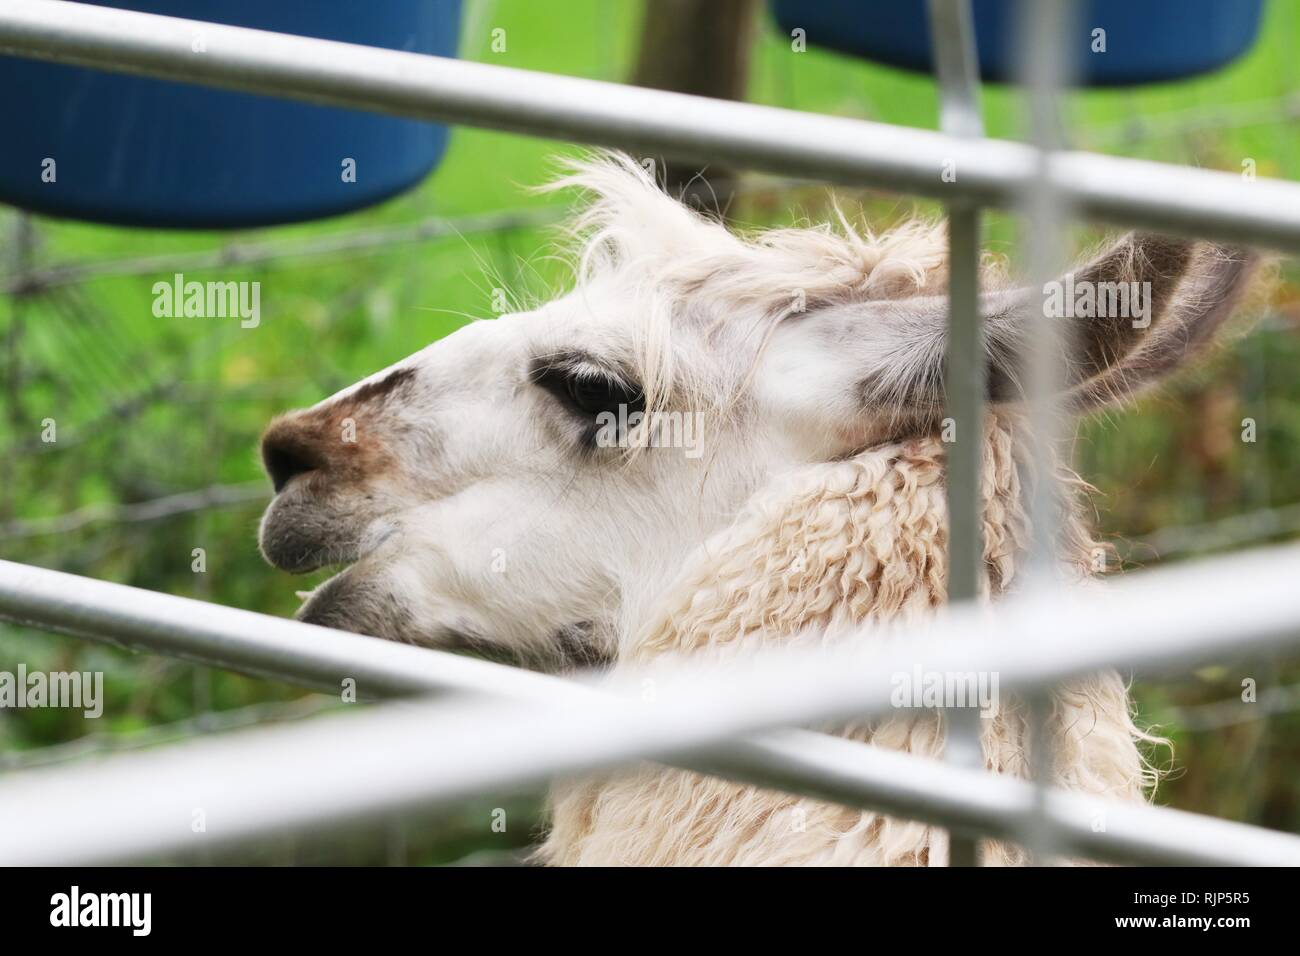 One of the llamas takes a break - Stock Image